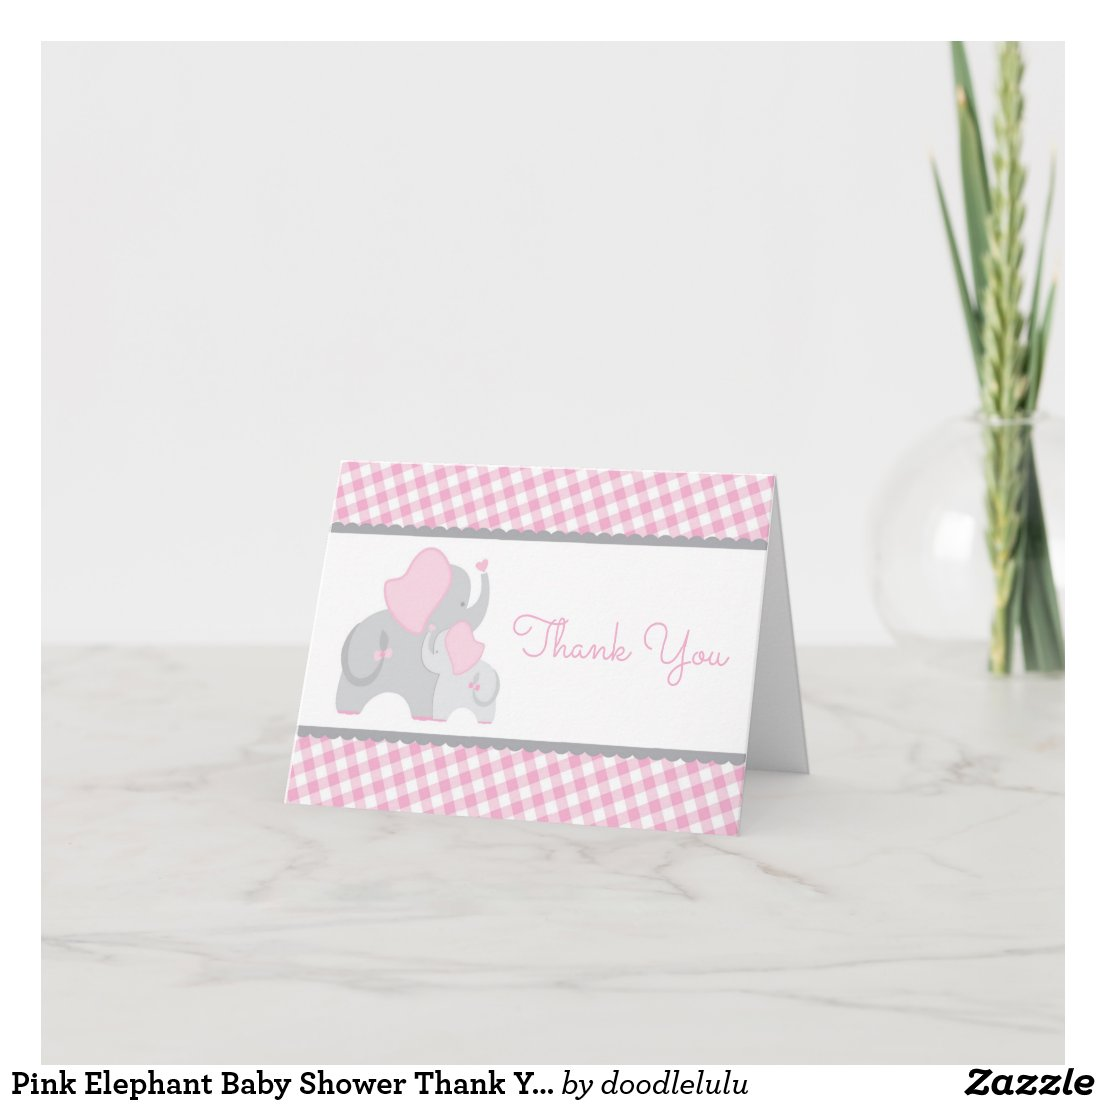 Pink Elephant Baby Shower Thank You Card, Gingham